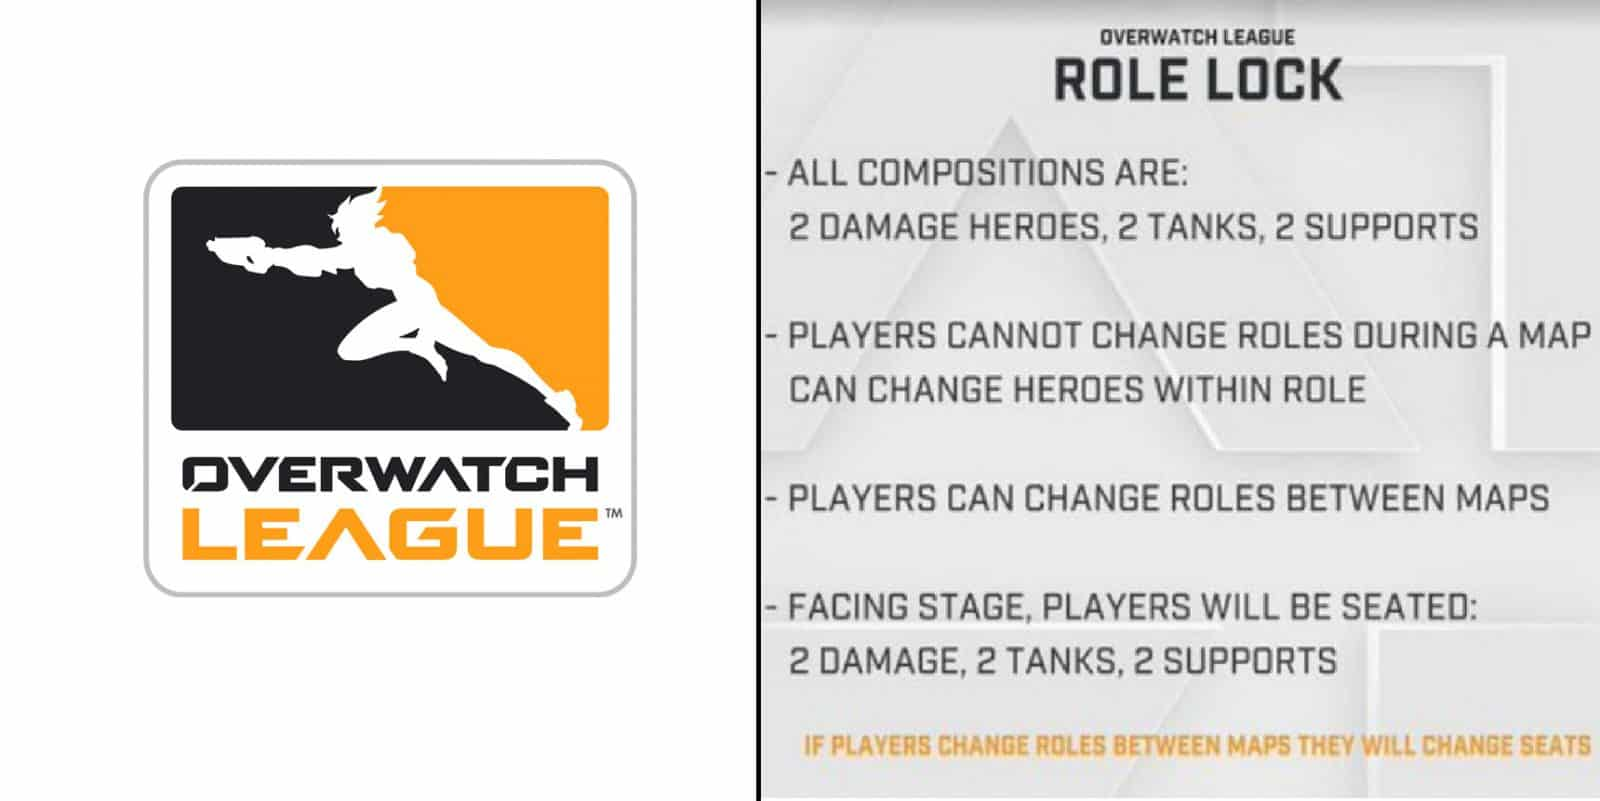 Leaked Information On The New Role Lock Feature Coming To Overwatch